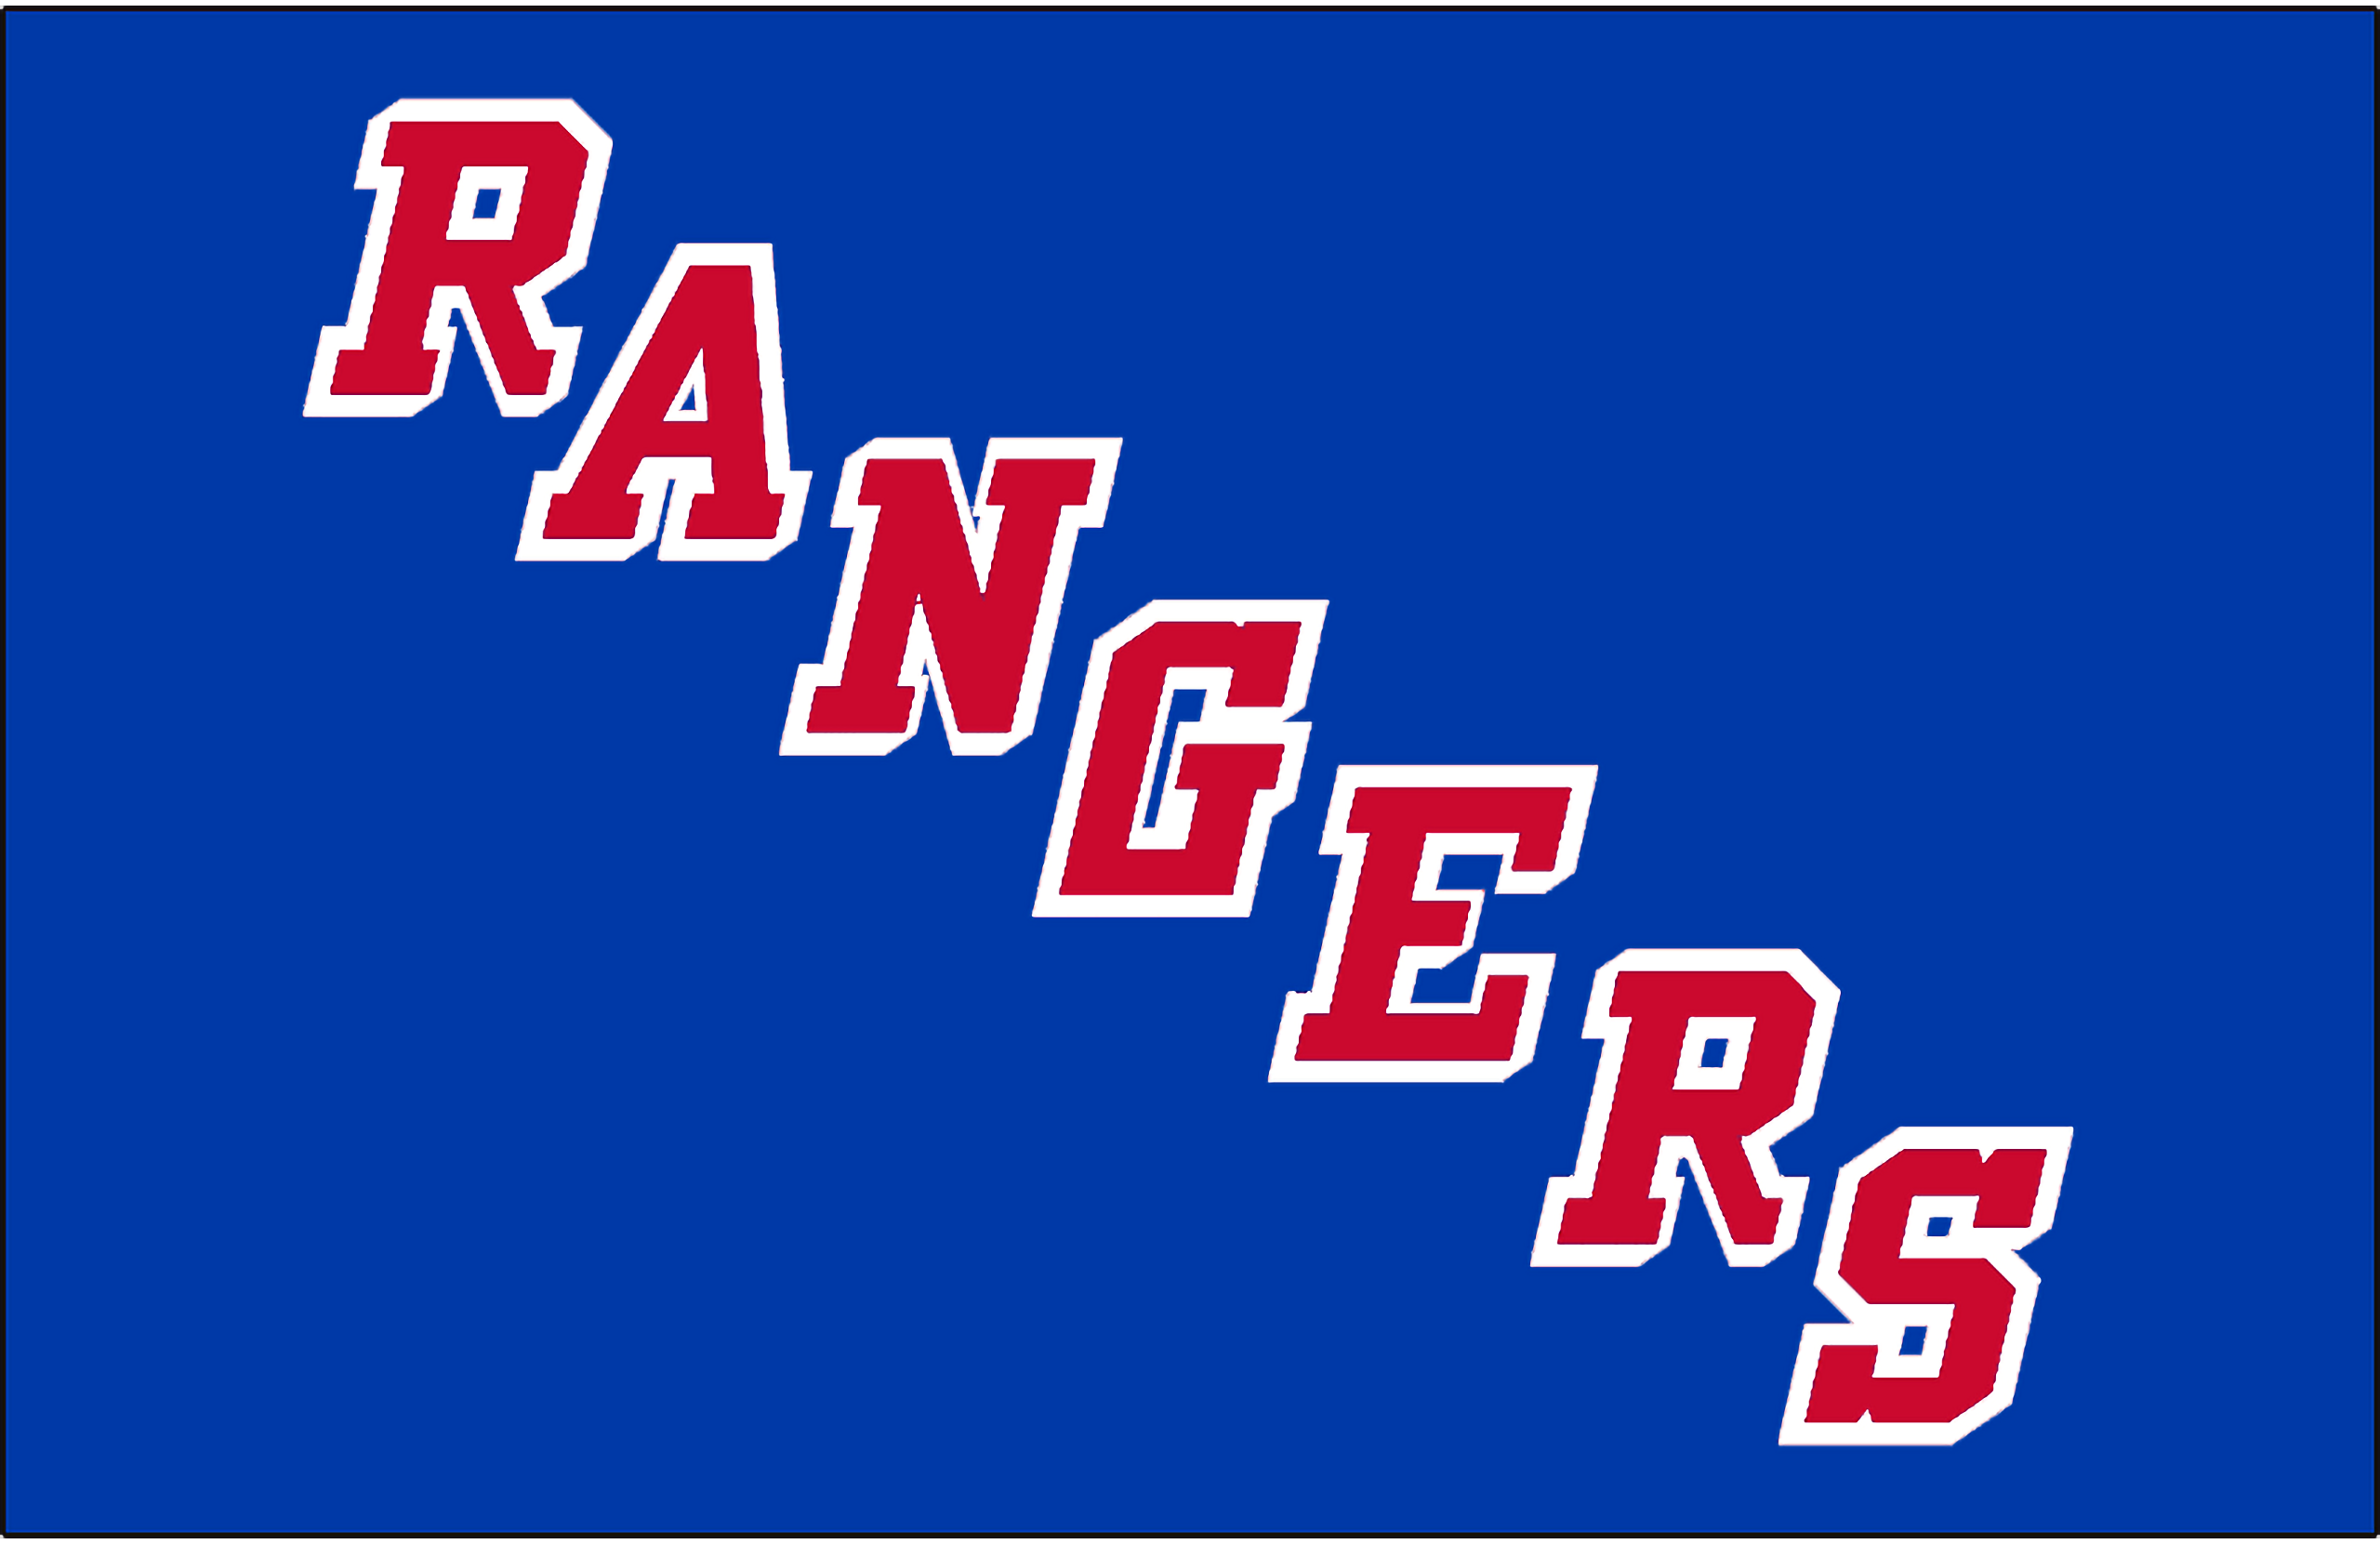 New York Rangers HD Wallpaper | Background Image | 2560x1661 | ID:859234 - Wallpaper Abyss